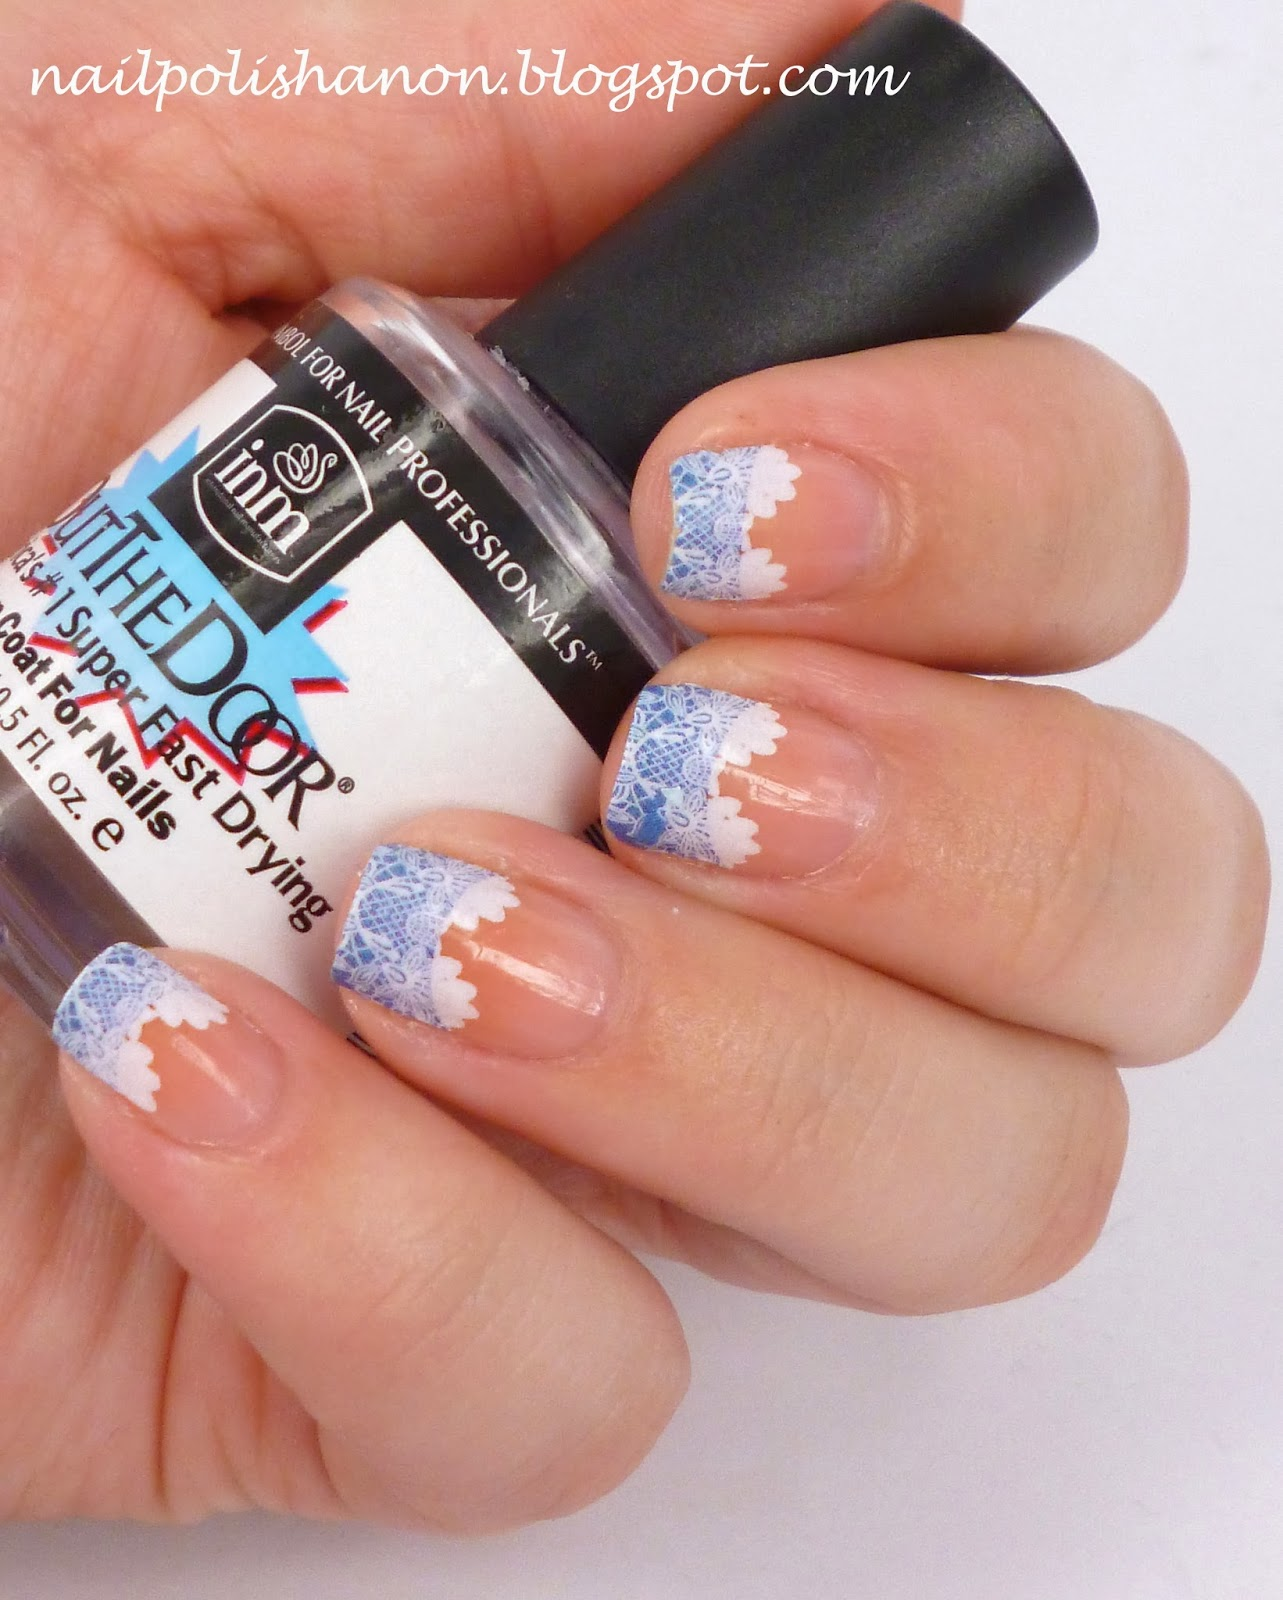 Nail Polish Anon: French Tip Lace Water Decals Review